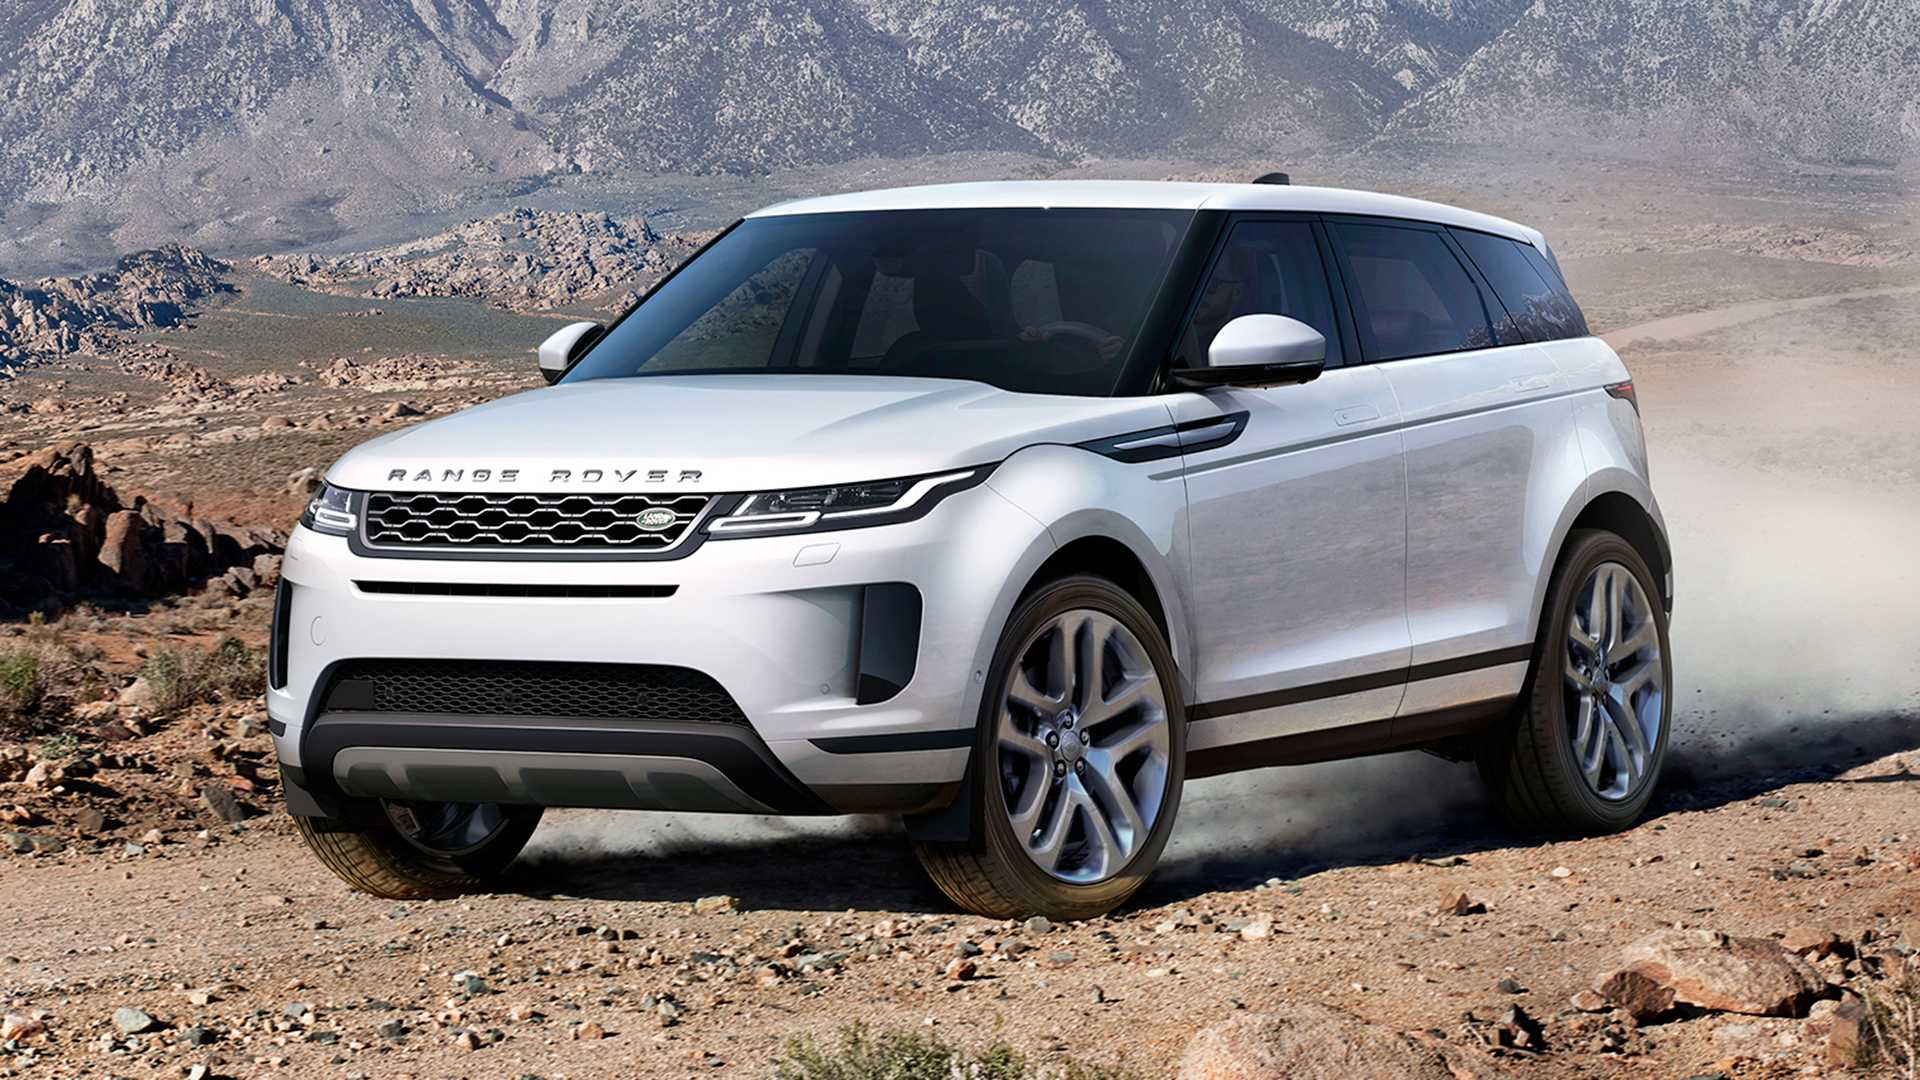 50 The 2020 Range Rover Evoque Price Design And Review